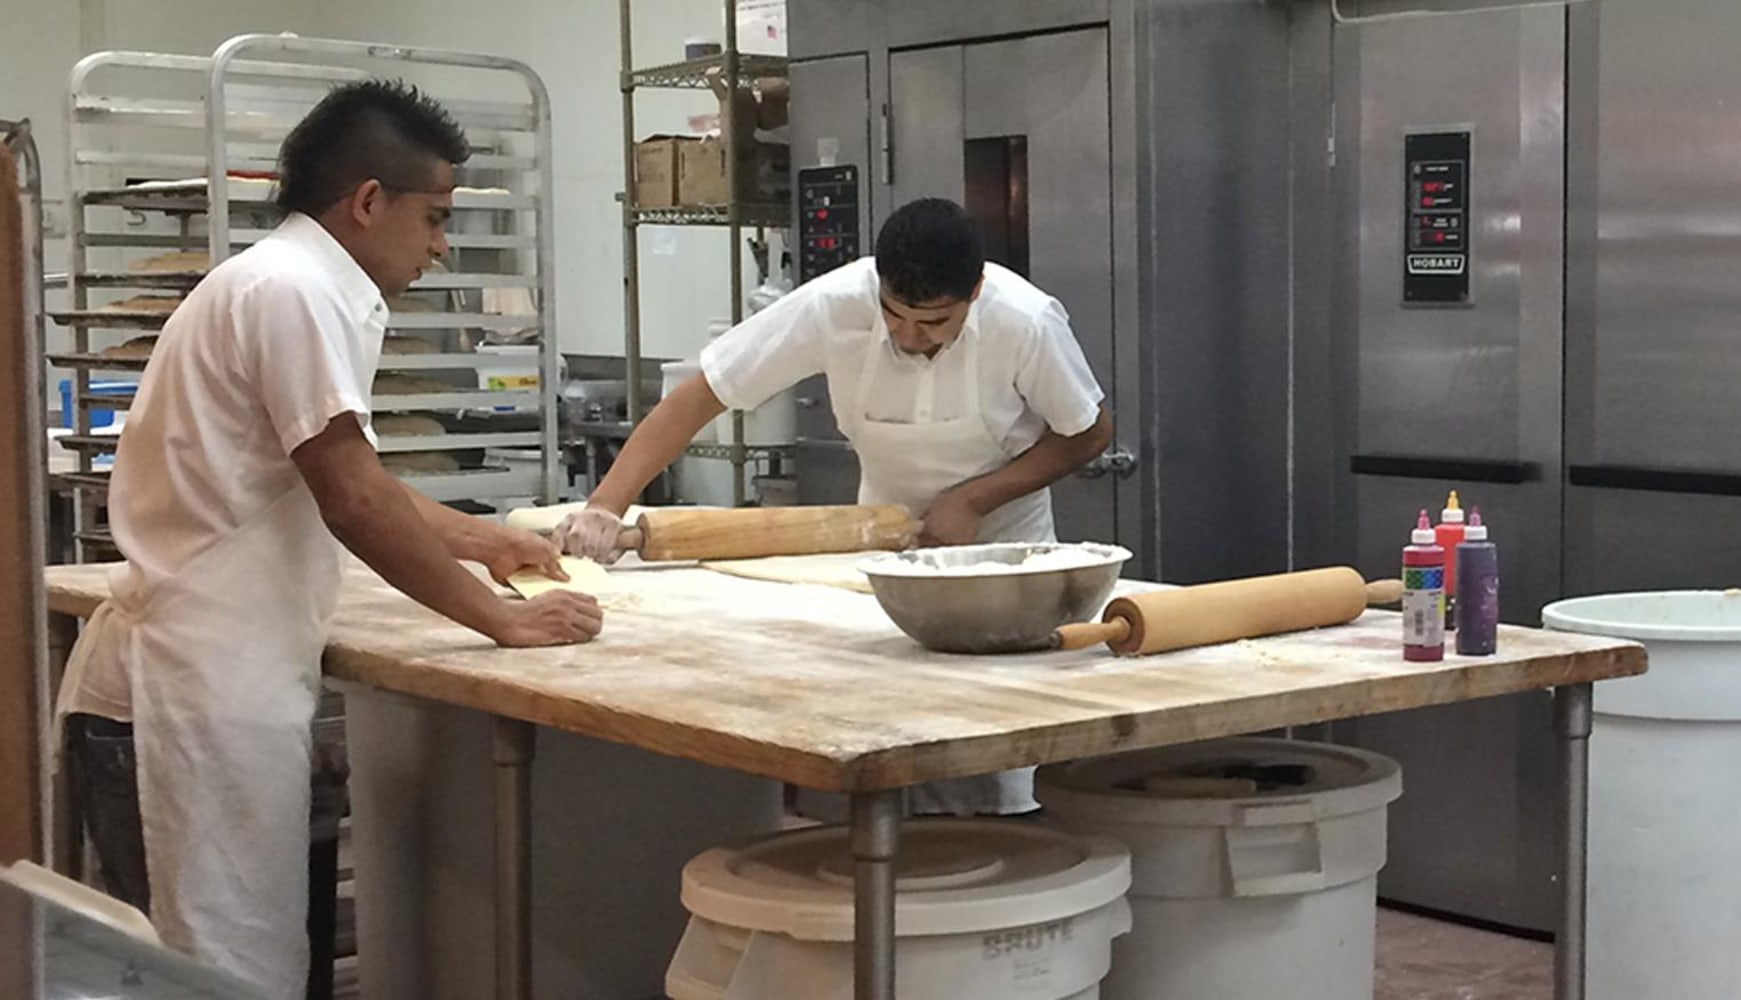 Cabinet Makers Durham Nc From Tobacco To Tortillas Latinos Remake Durham North Carolina